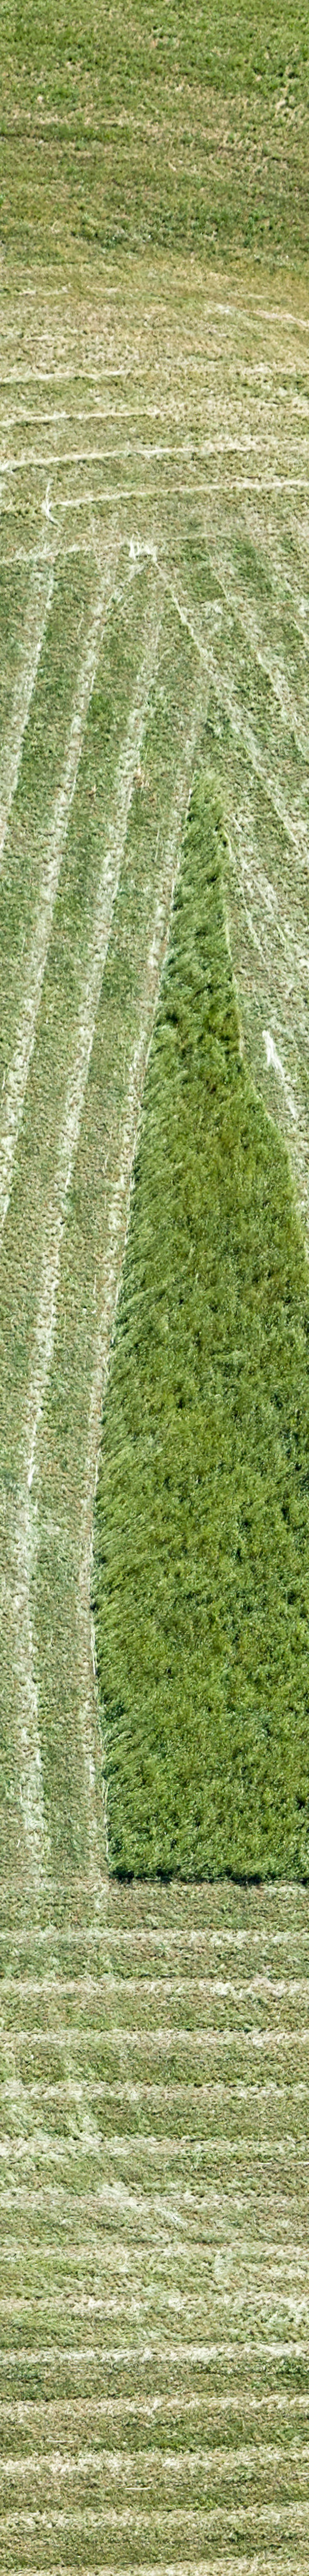 Aerial view of mowing work at Dinding - Klaus Leidorf Aerial Photography